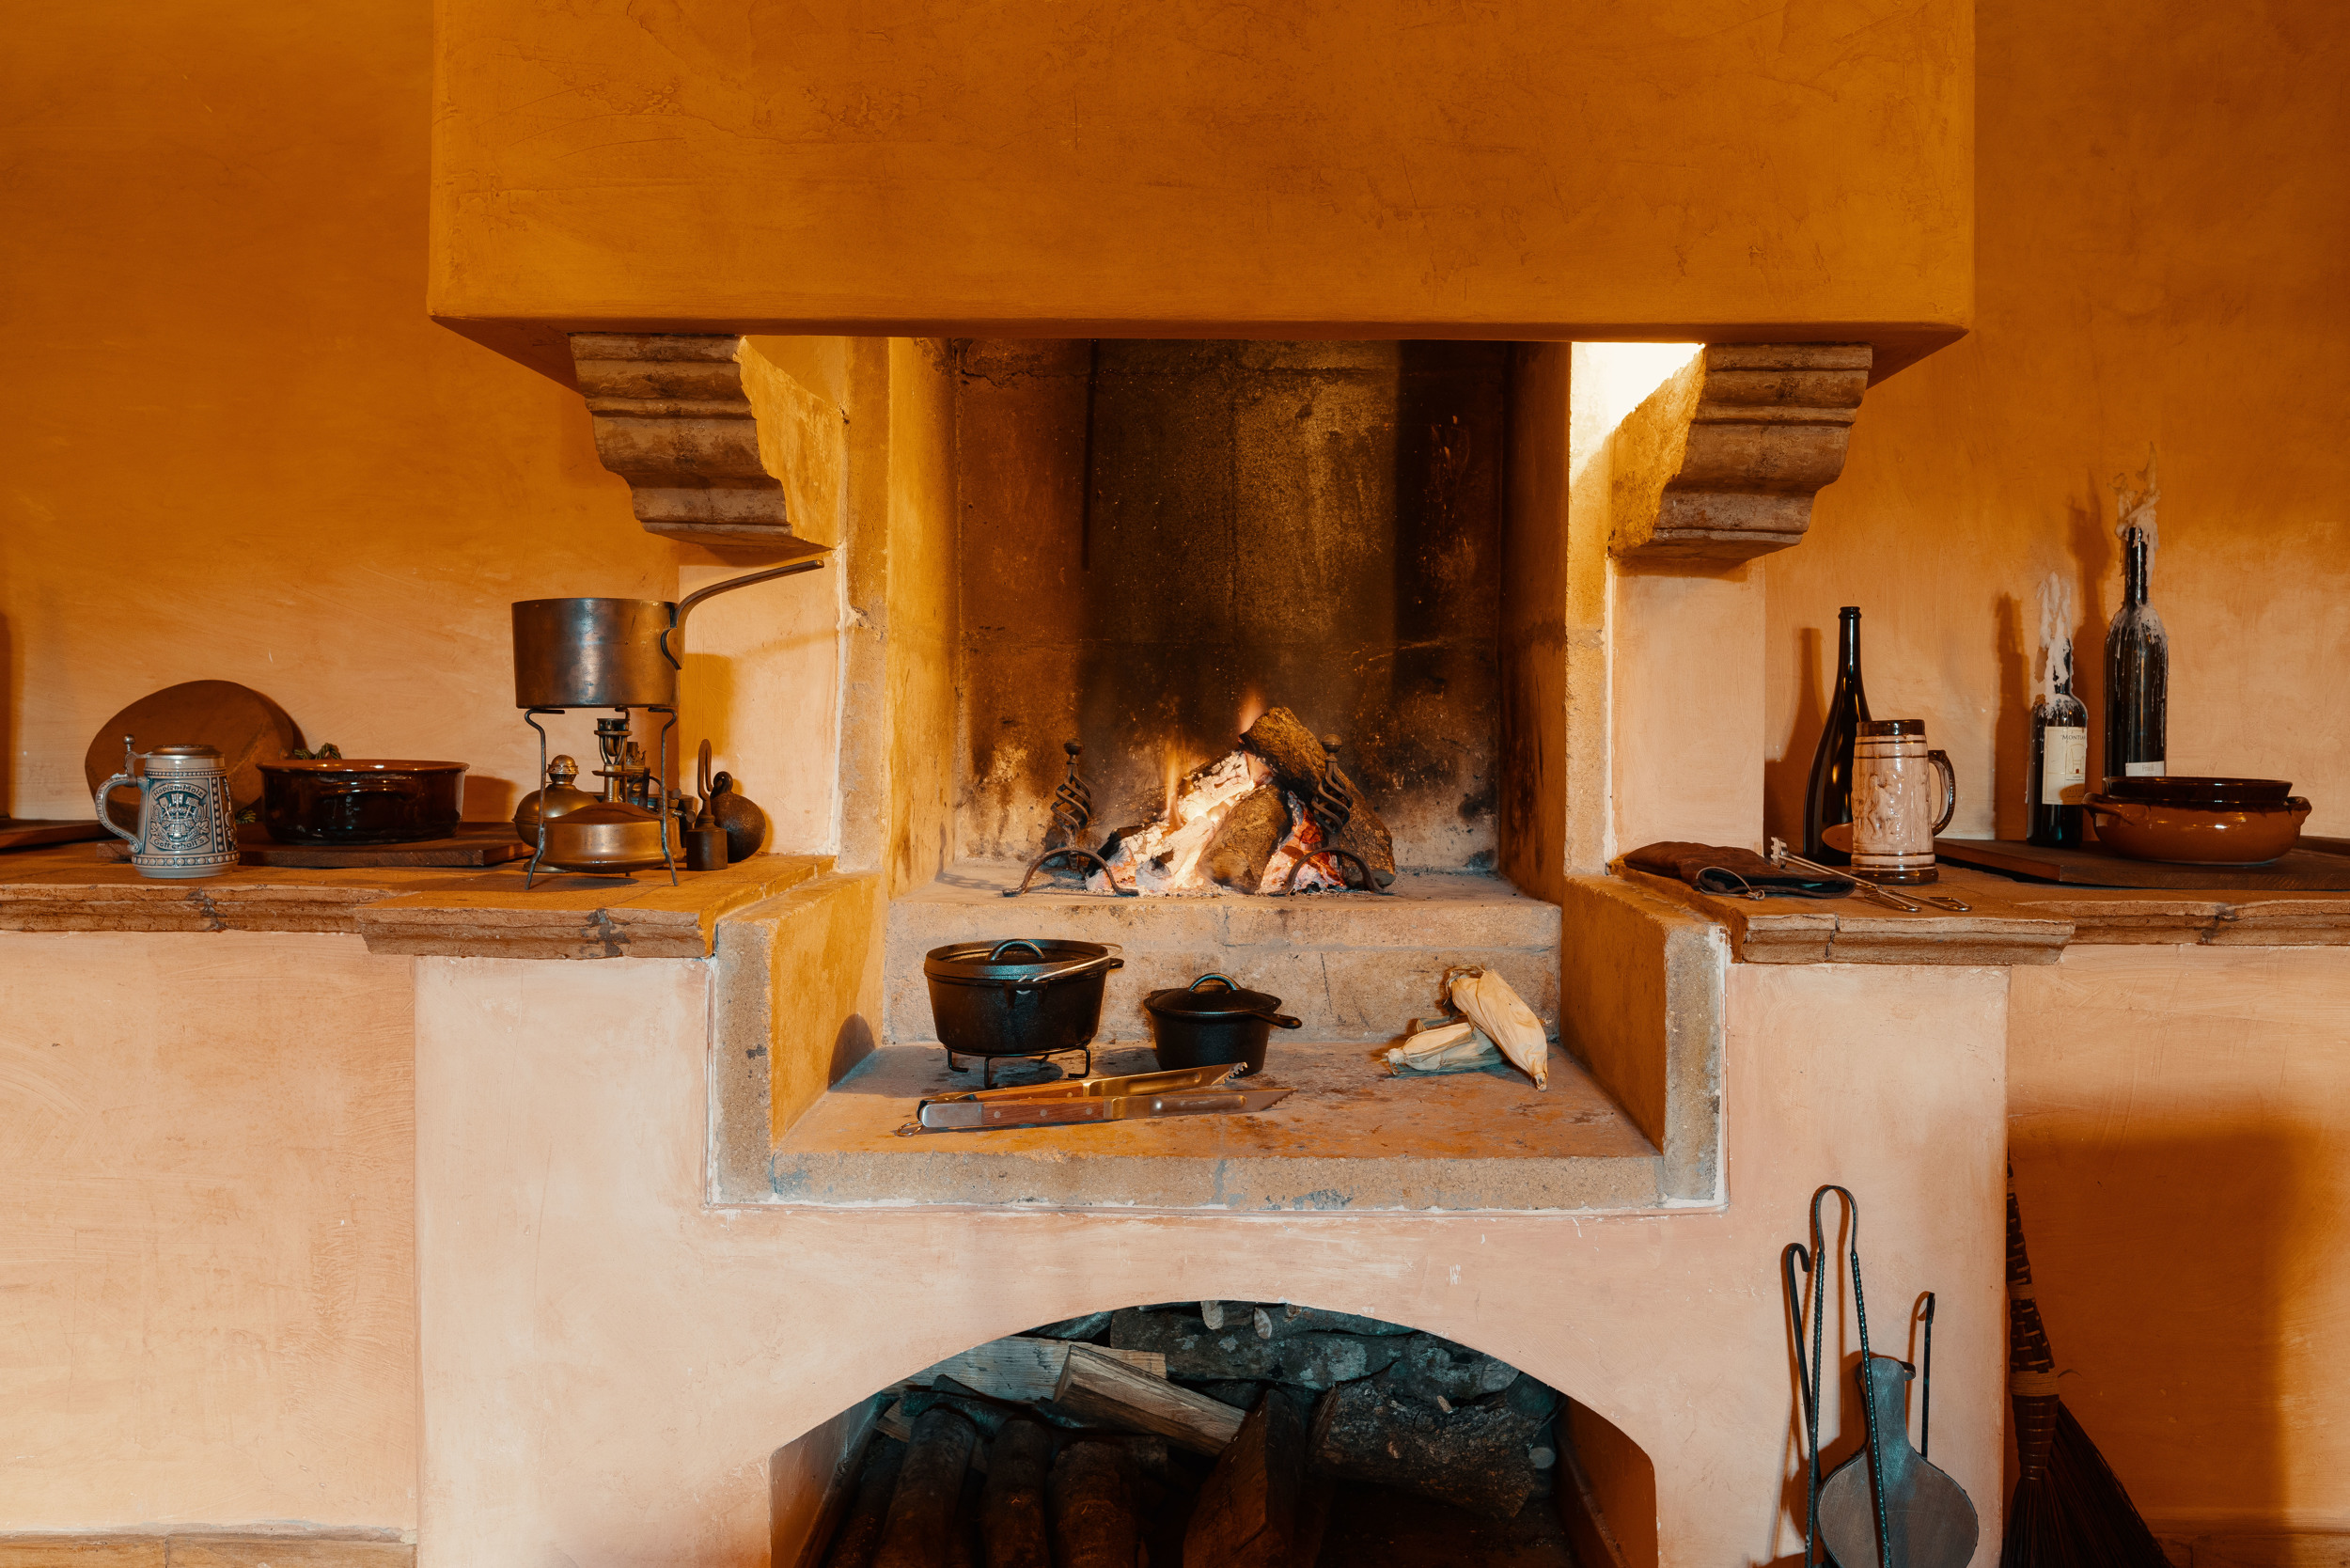 Wood-fired hearth and live-fire cooking.